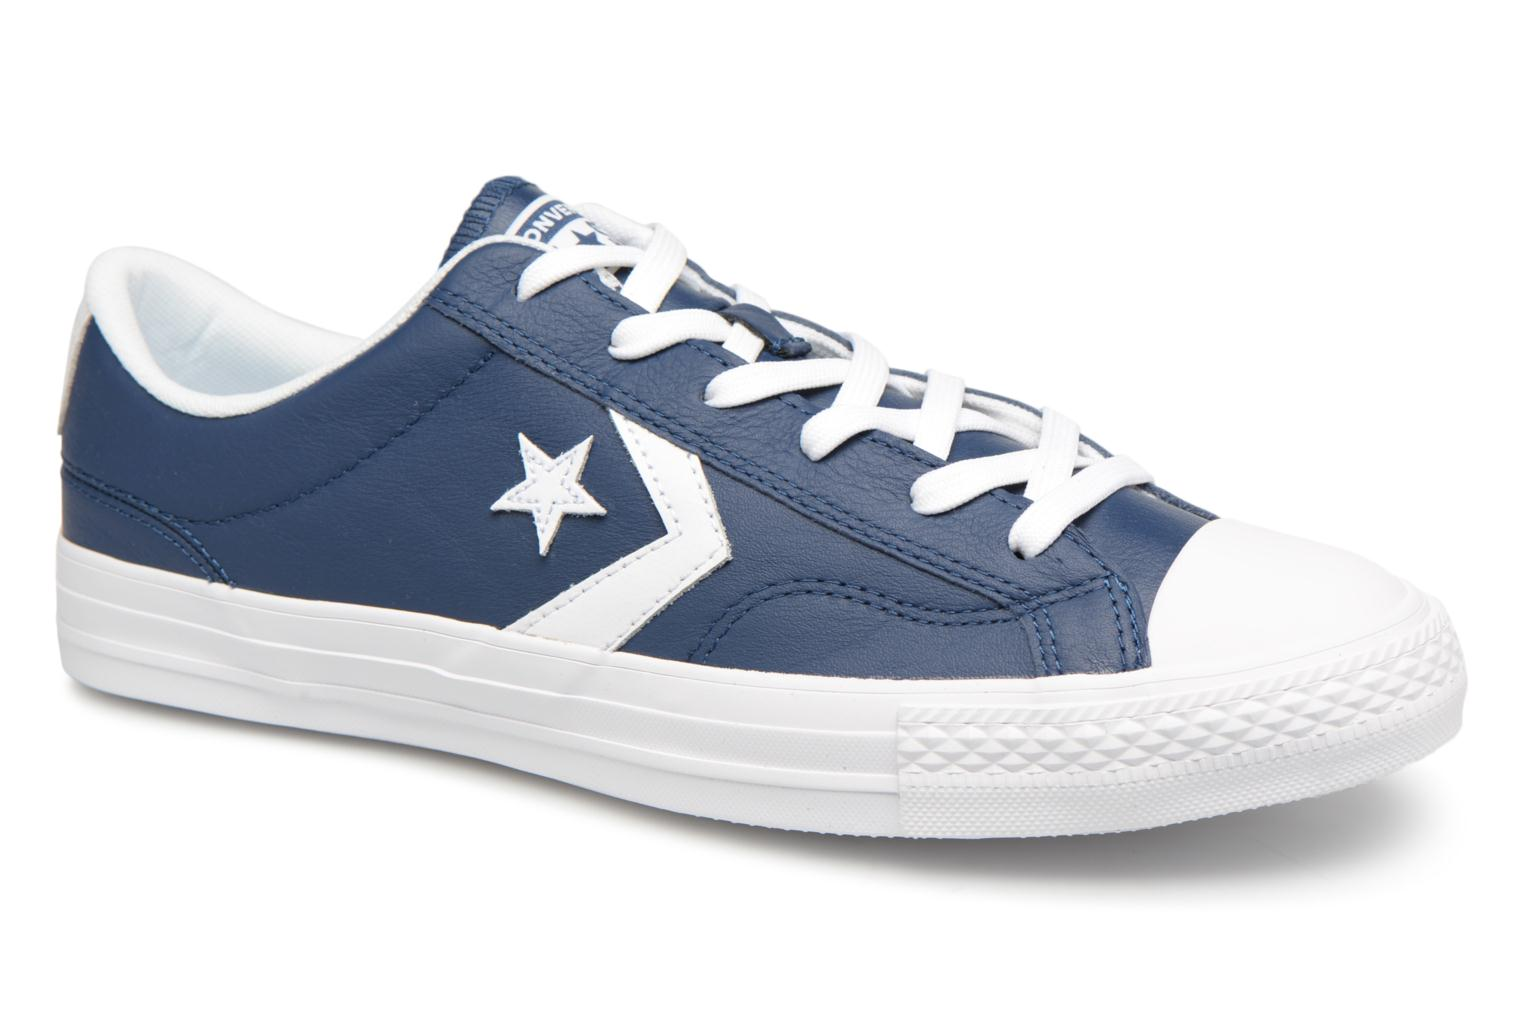 Sneakers Star Player Leather Essentials Ox by ConverseConverseBlauwPaar schoenen - Sneakers88875535115440Leer